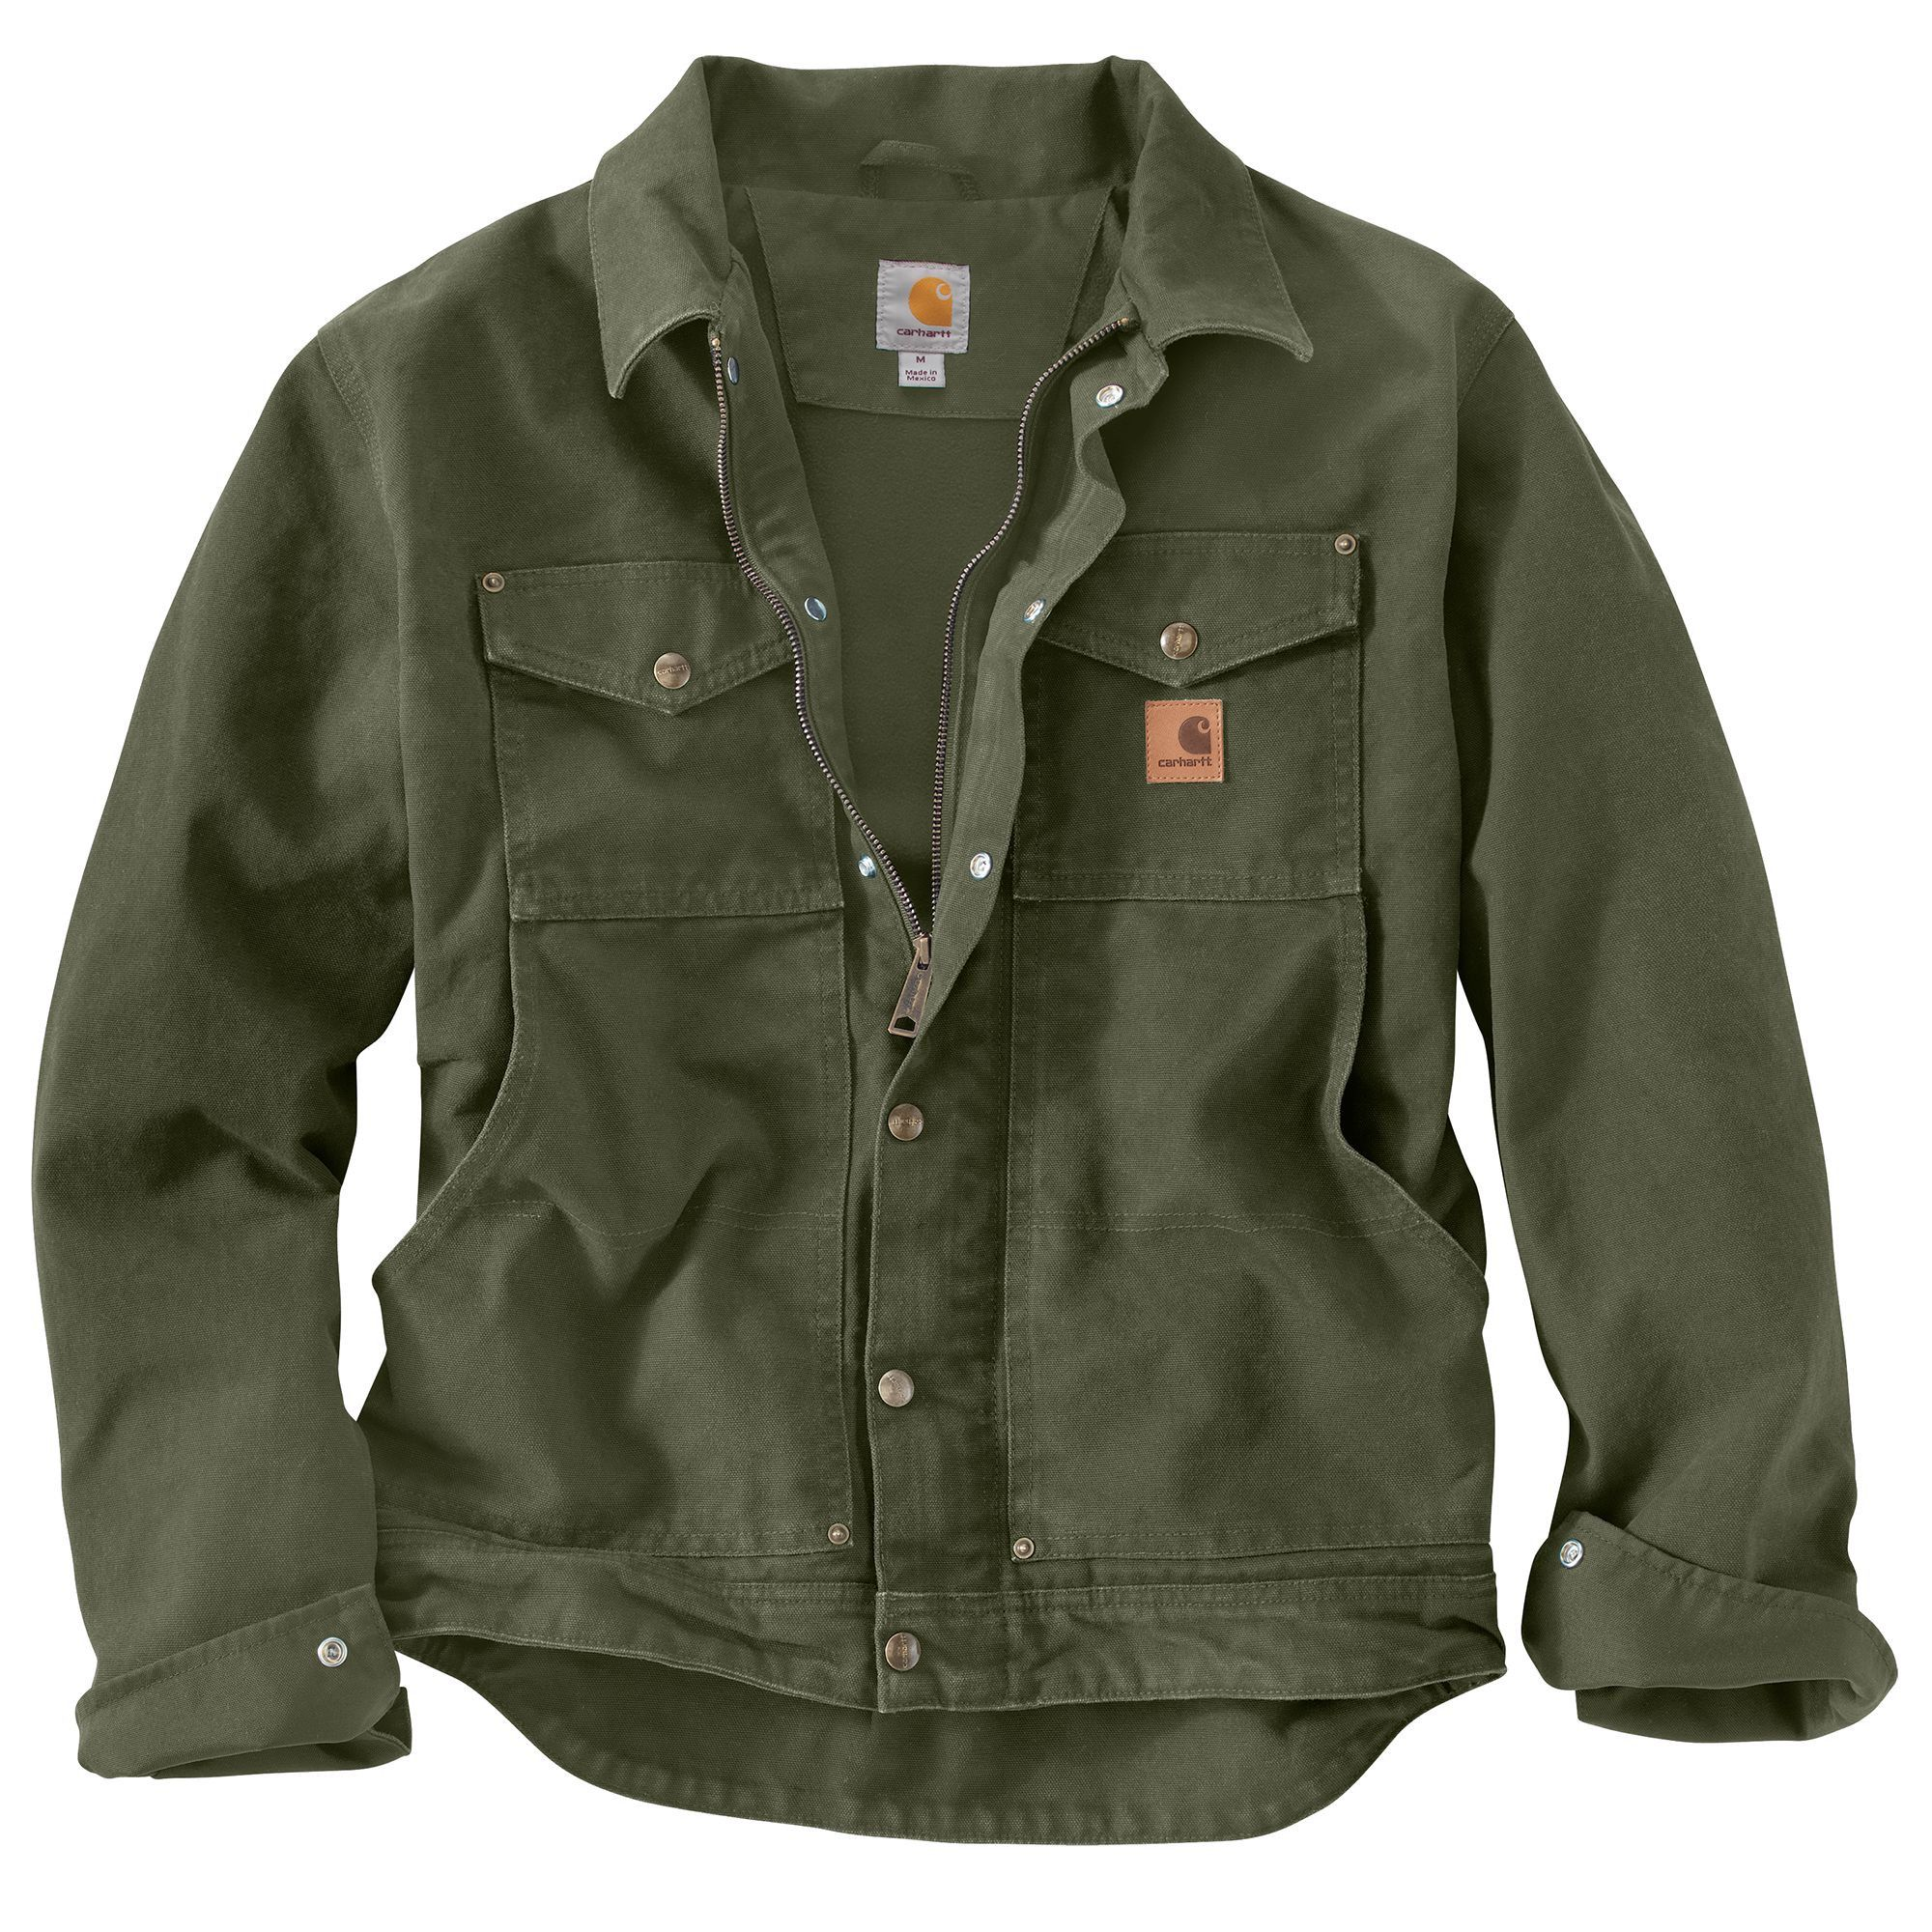 Carhartt Mens Berwick Jacket 101230 Moss 101230 391 Anvil Ladies' Sheer  Scoop-Neck Tee